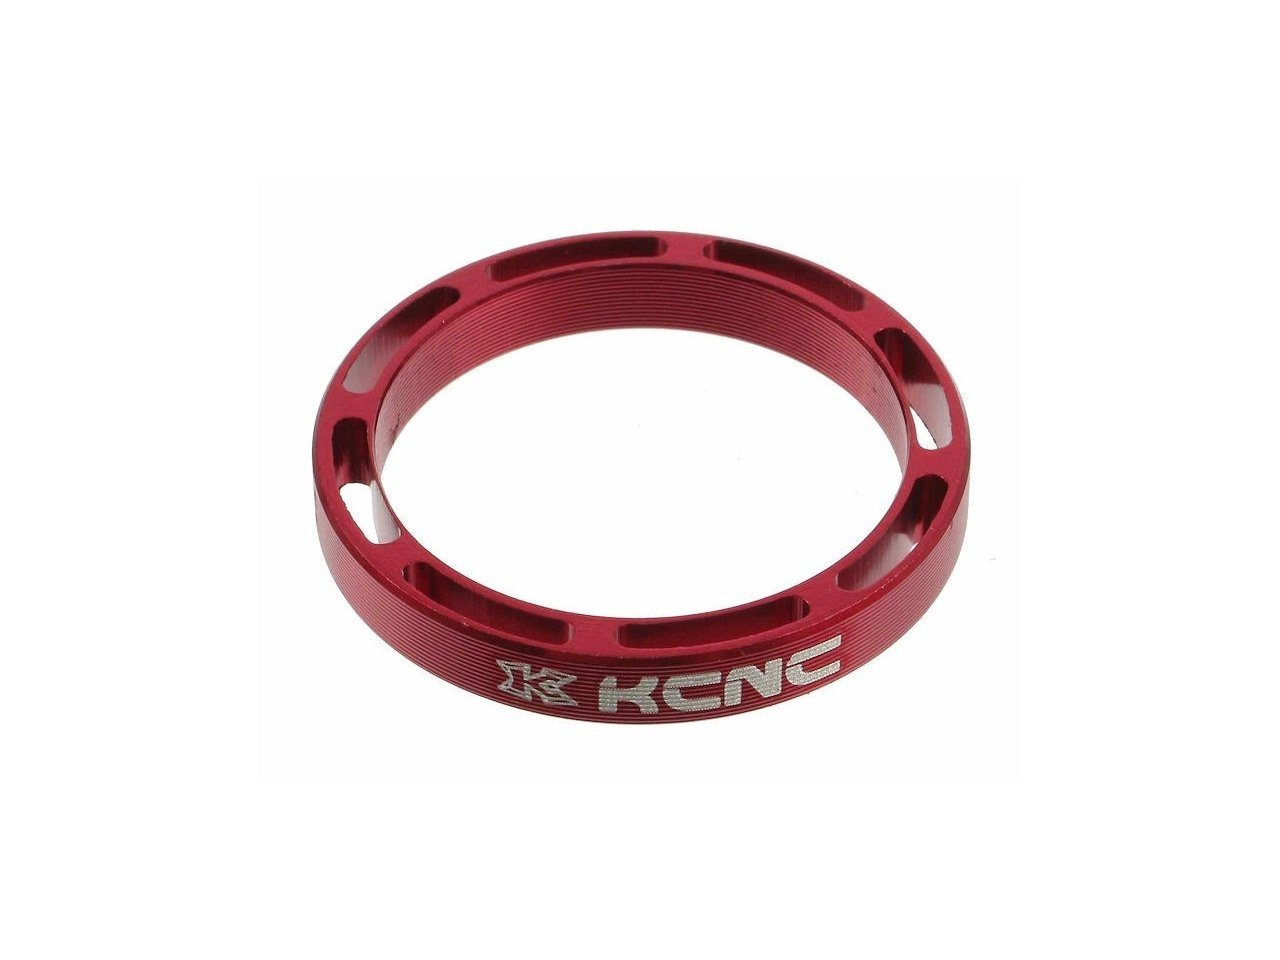 """KCNC 1-1//8/"""" Hollow Spacer 2 3 5 8 10 12 14 20mm Green"""